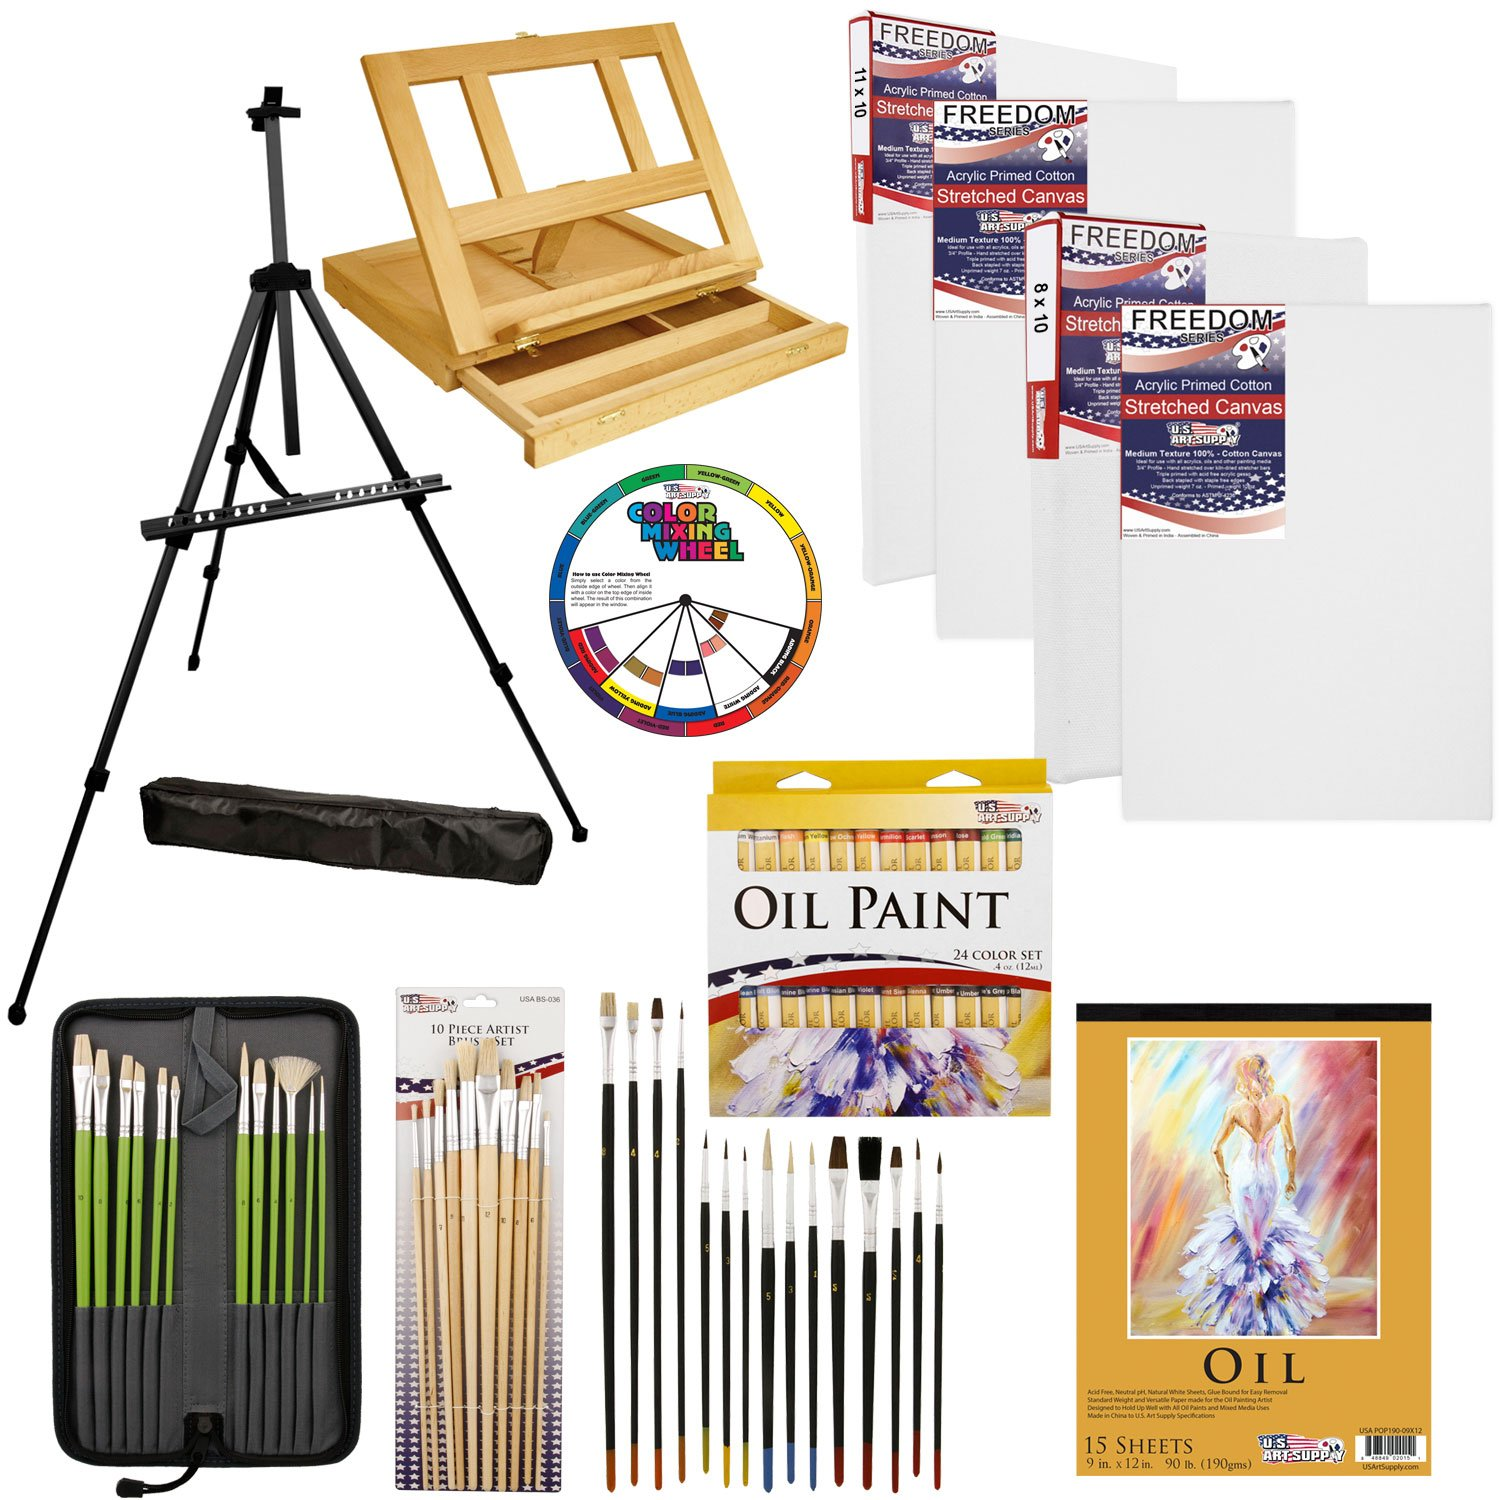 U.S. Art Supply 70-Piece Oil Painting Set with Aluminum Floor Easel, Wood Table Easel, 24 Oil Paint Colors, Oil Painting Pad, 8''x10'' Stretched Canvases, 11''x14'' Stretched Canvases, Artist Brushes by US Art Supply